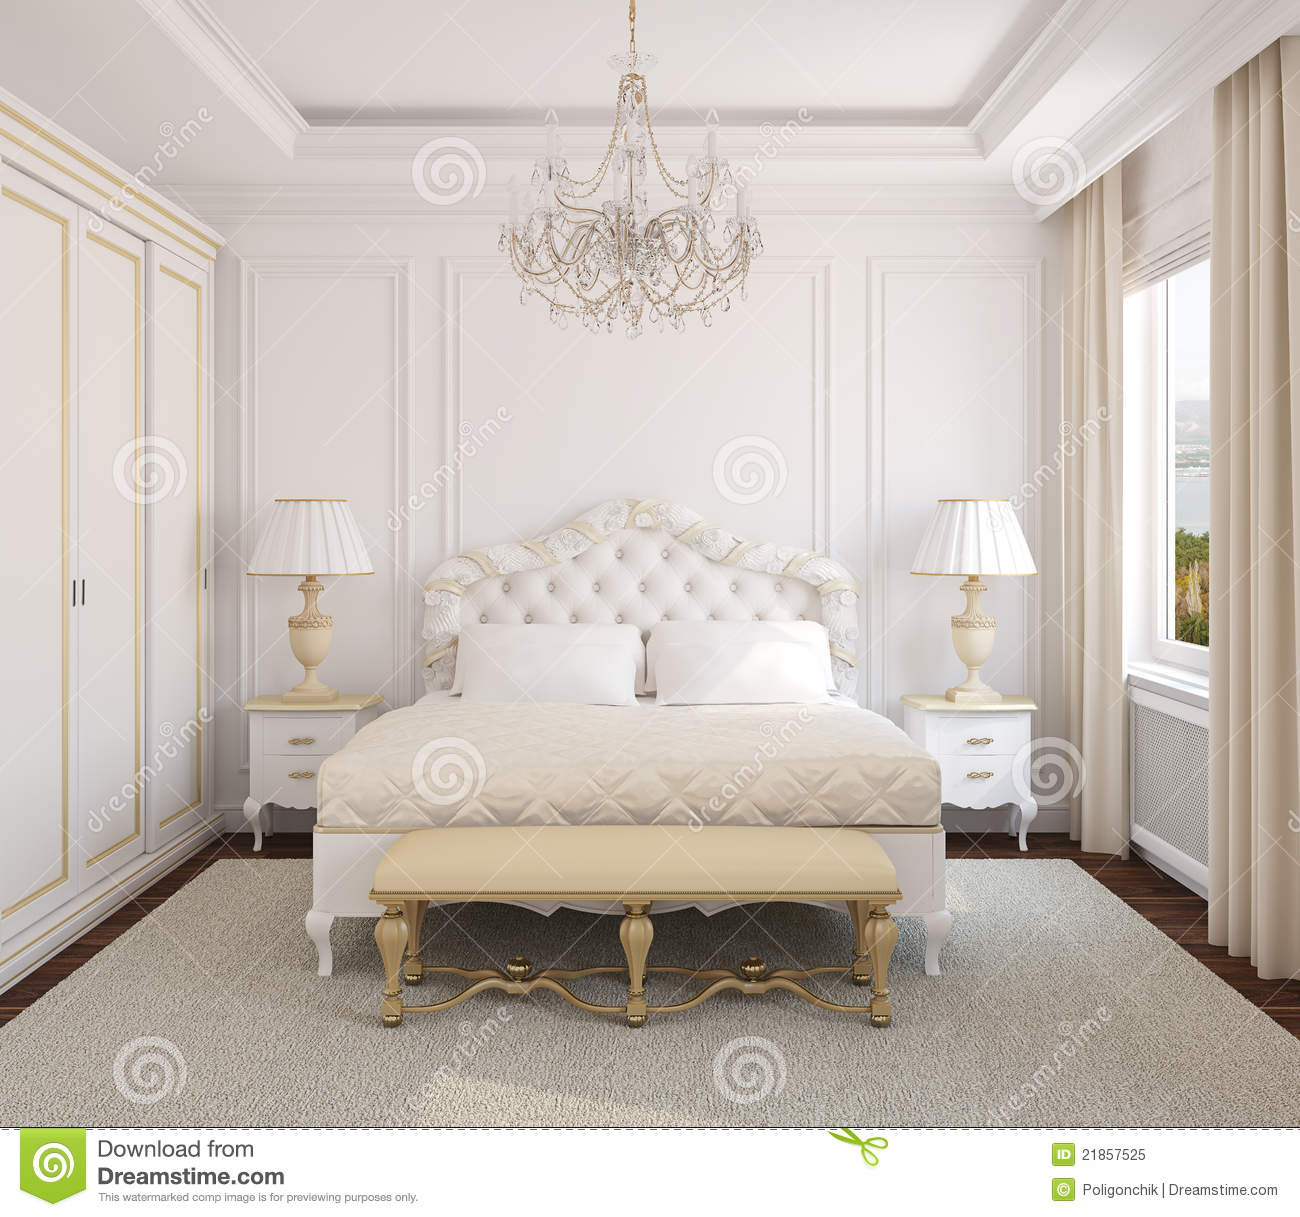 Classic bedroom interior royalty free stock photo image for Bedroom designs classic